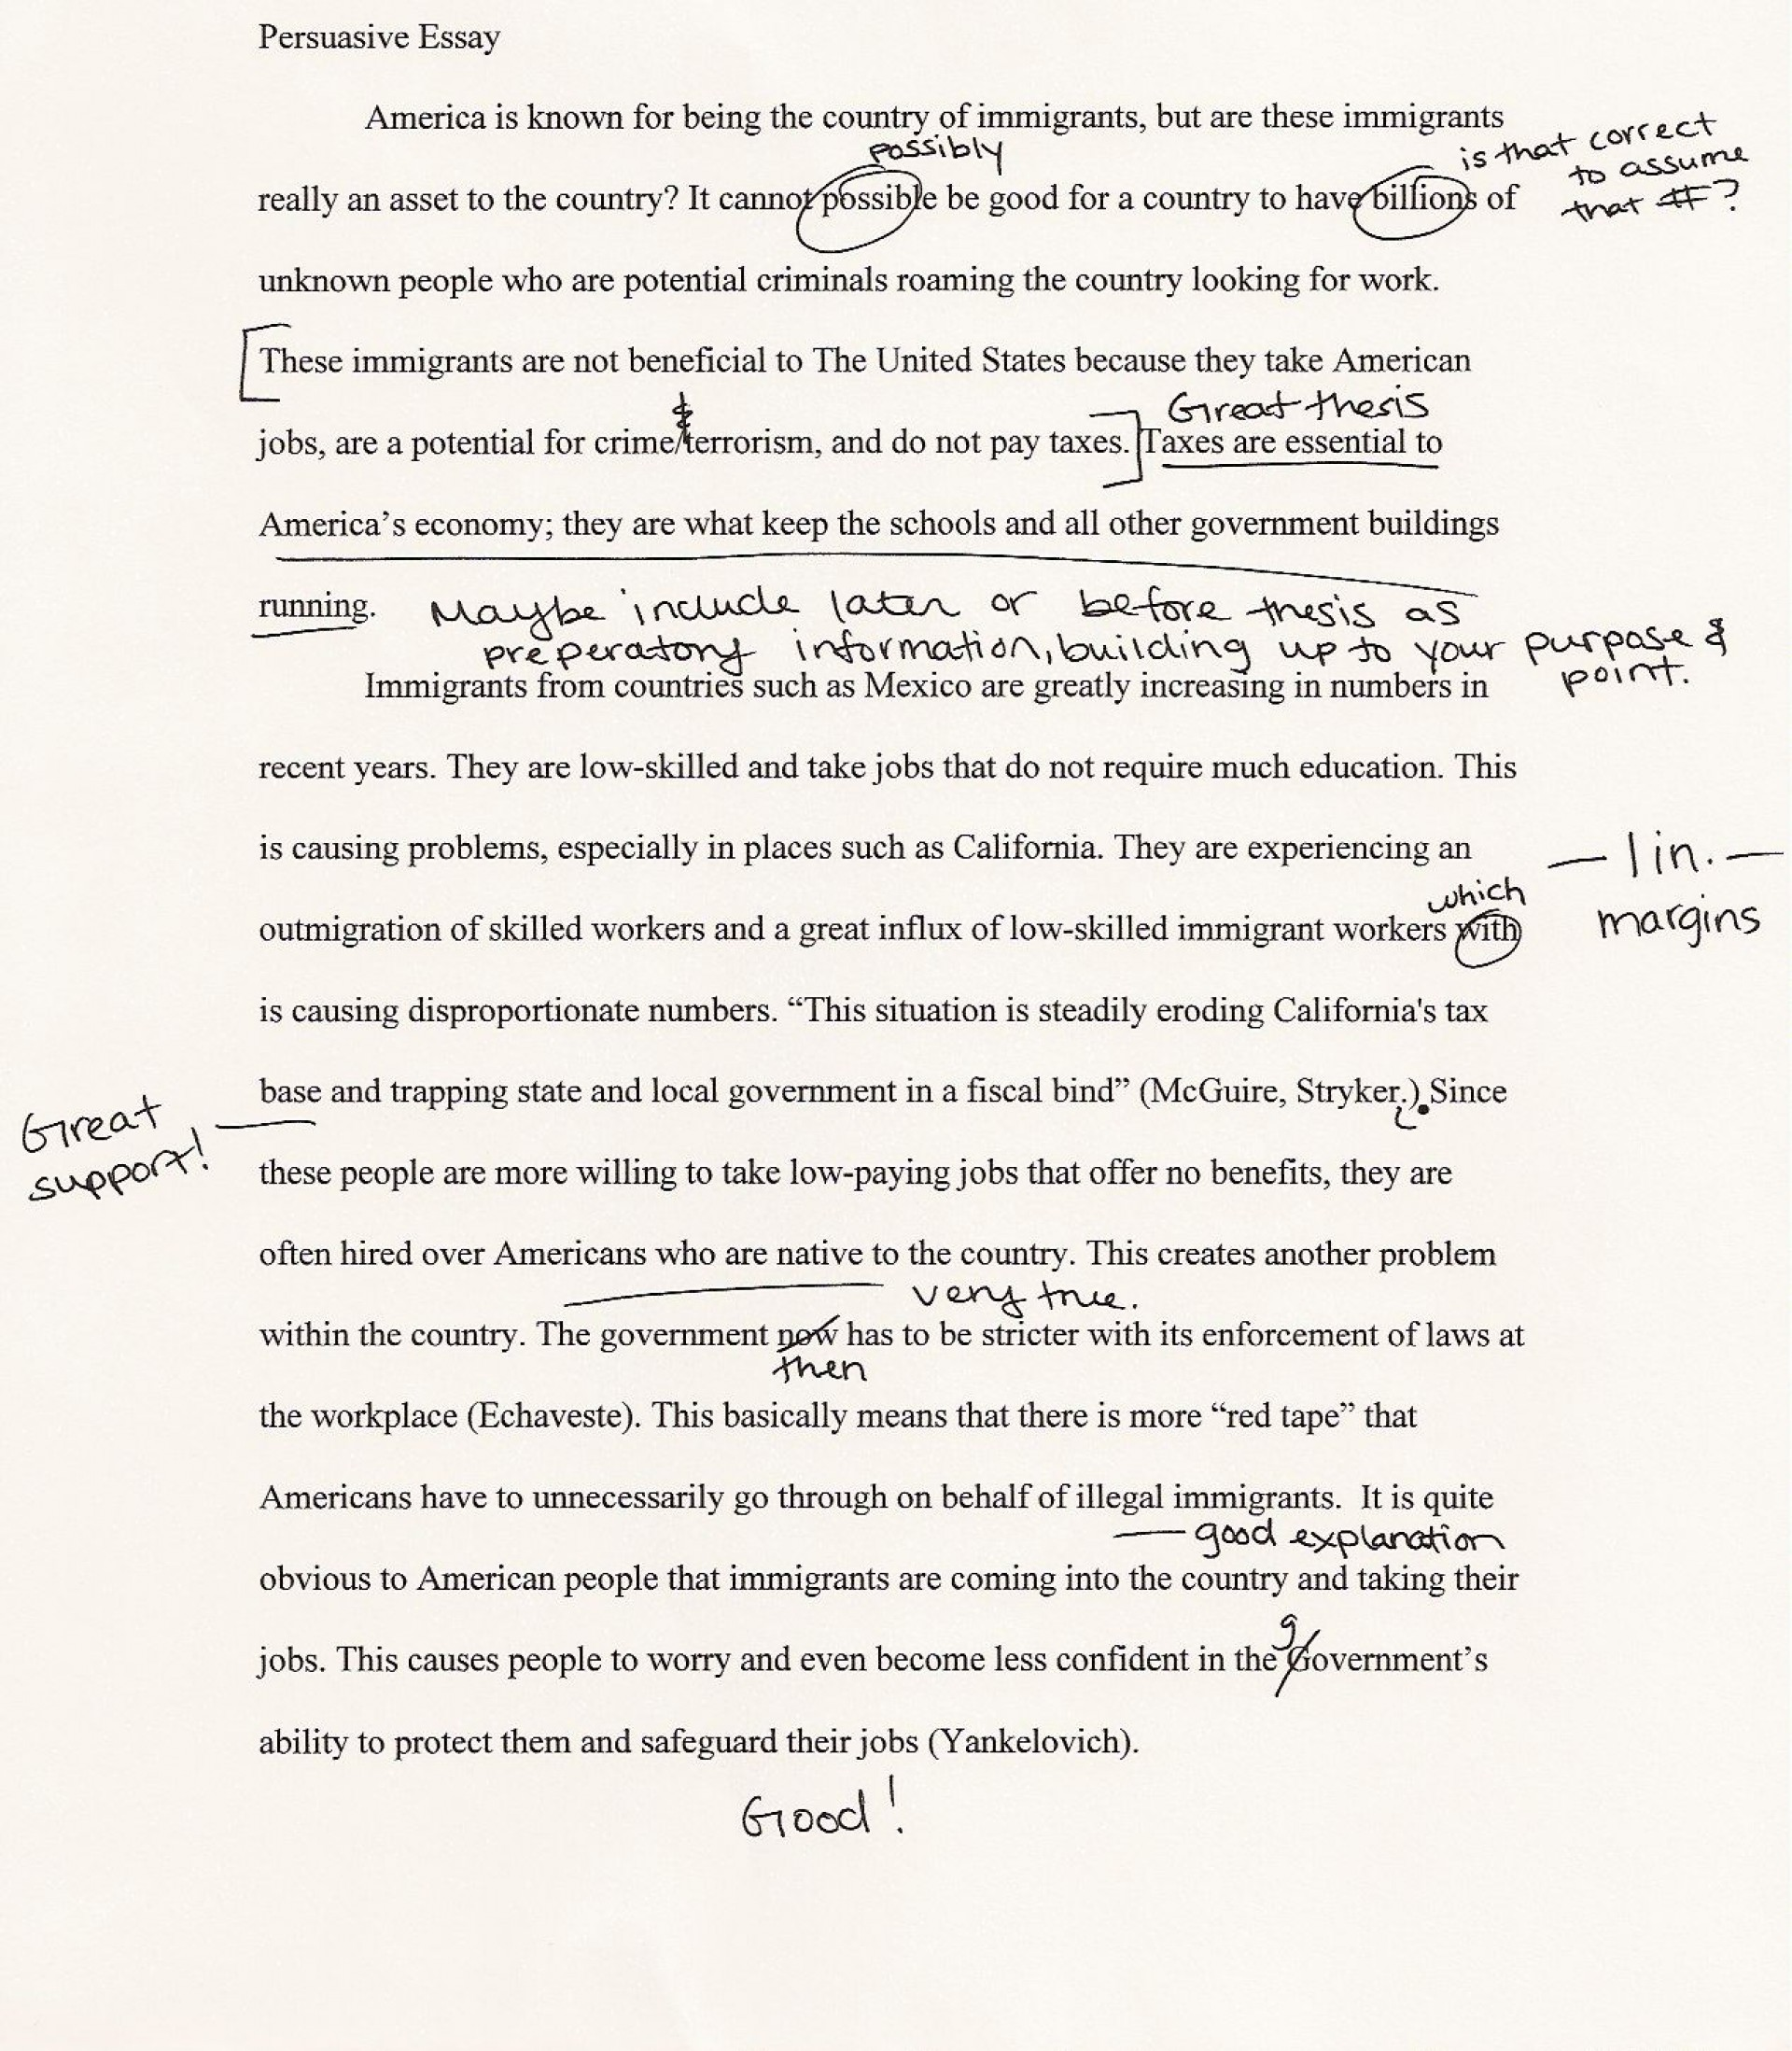 024 Argumentative Research Paper Vs Expository Essays Awful 1920